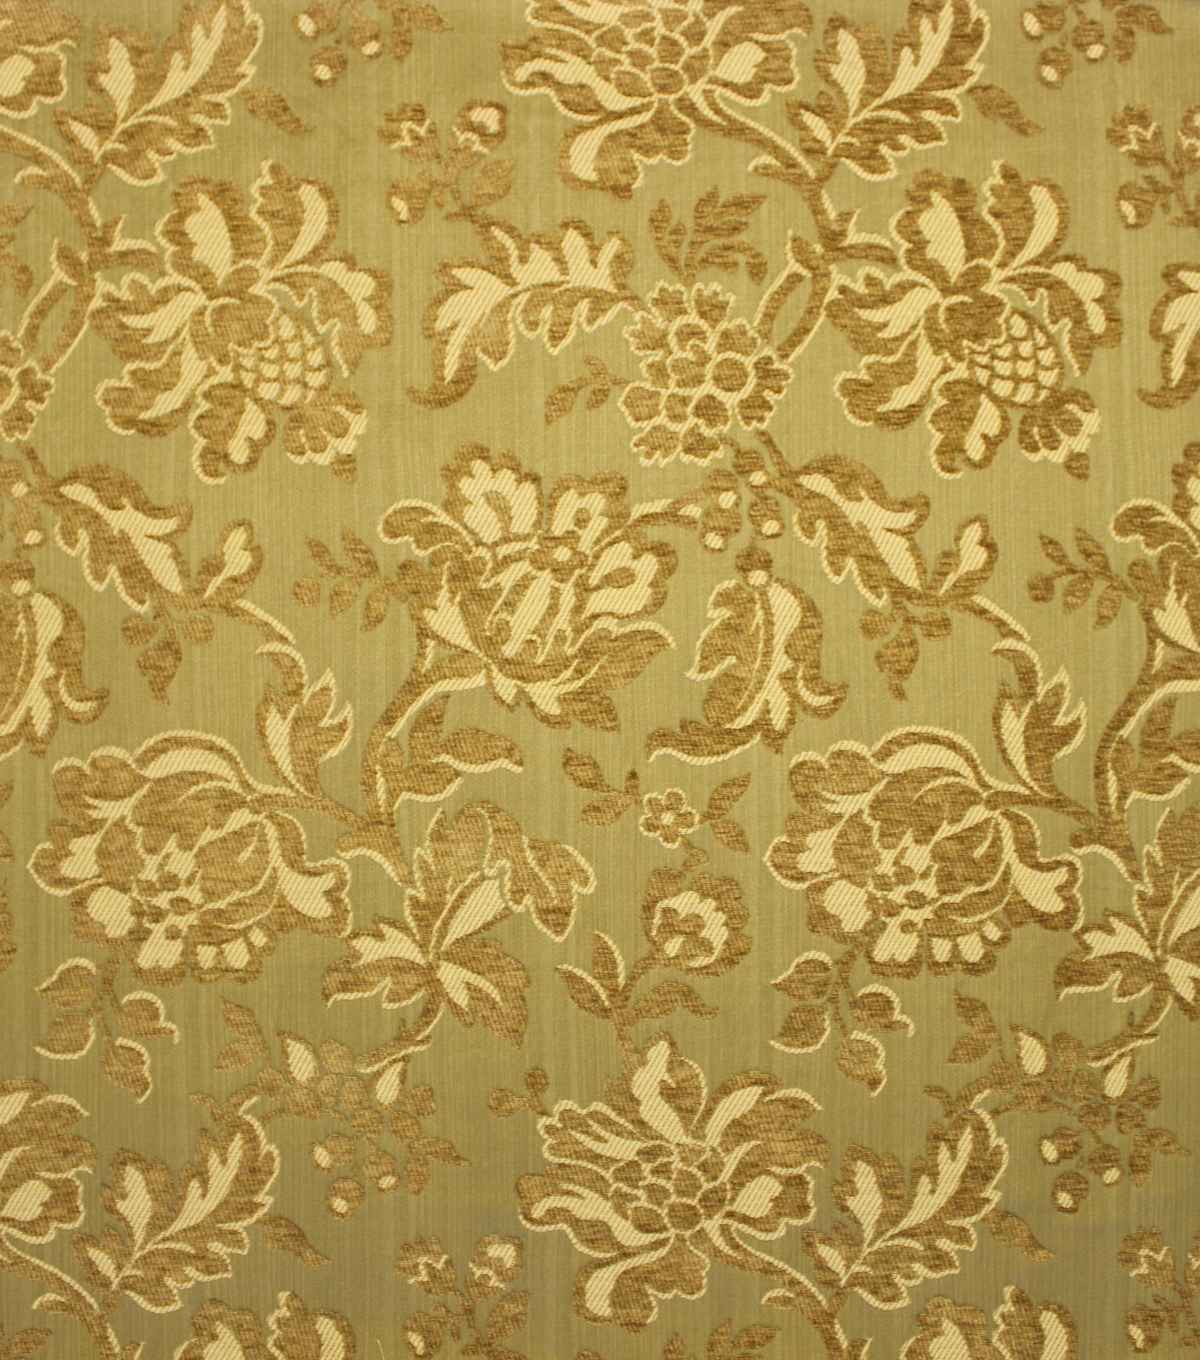 Home Decor 8\u0022x8\u0022 Fabric Swatch-Upholstery Fabric Barrow M7352 5704 Kelp